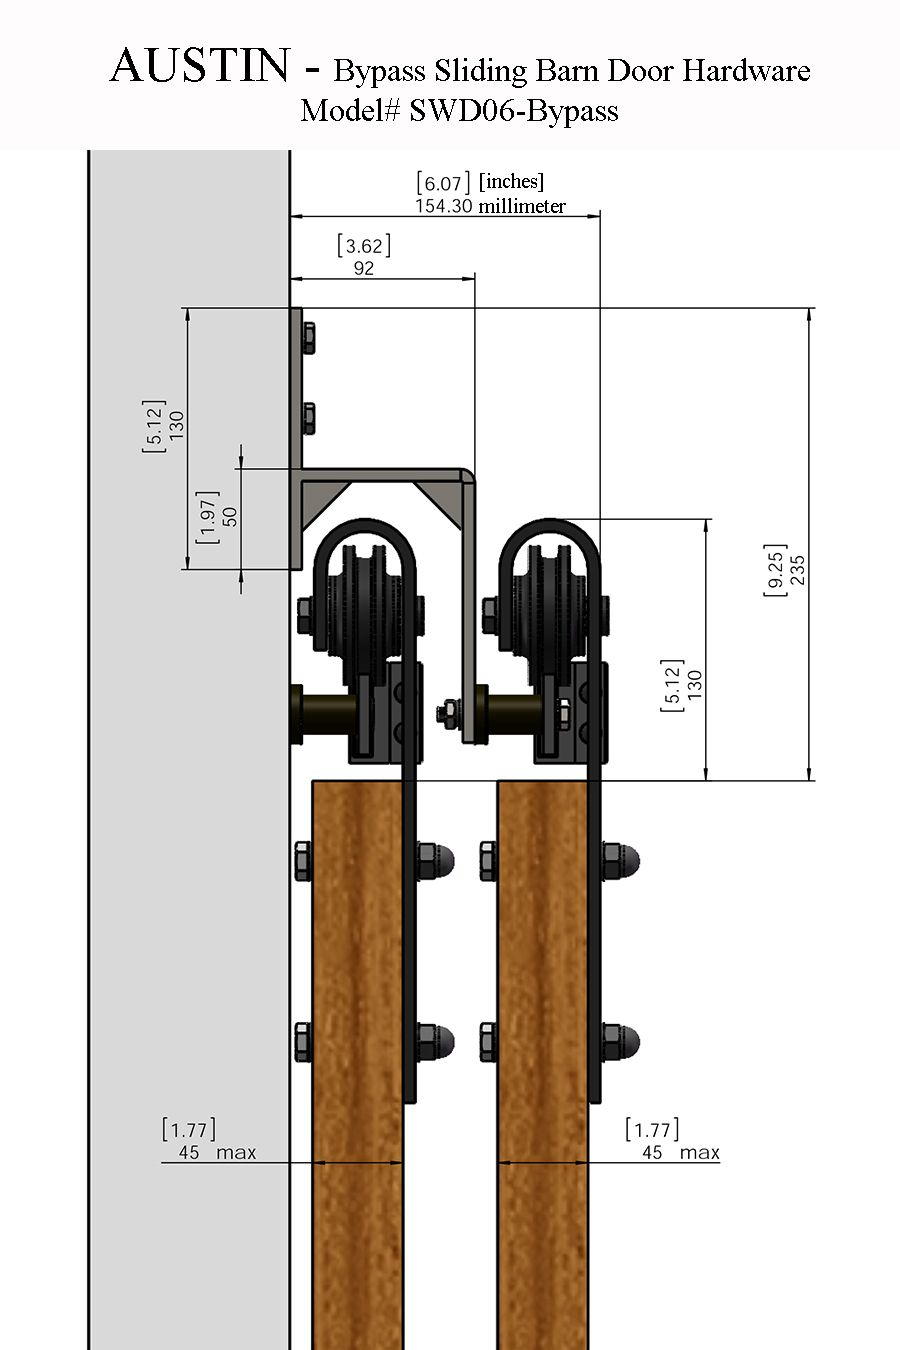 Austin Double Bypass Sliding Barn Door Hardware Bypass Barn Door Barn Doors Sliding Sliding Barn Door Hardware